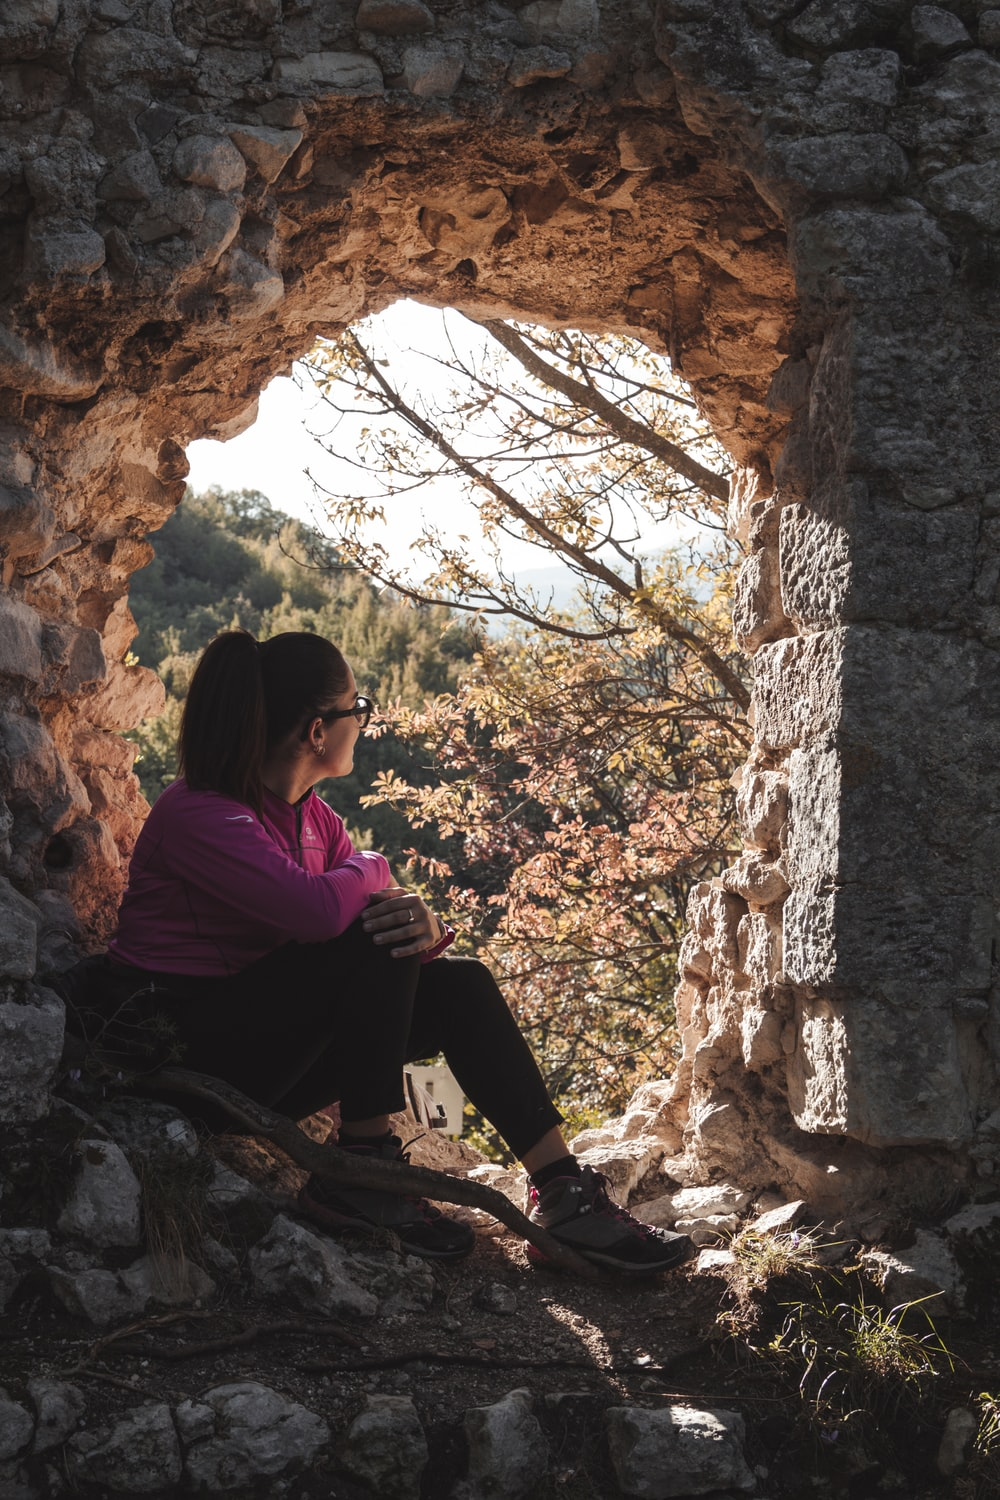 woman in purple long sleeve shirt sitting on rock during daytime